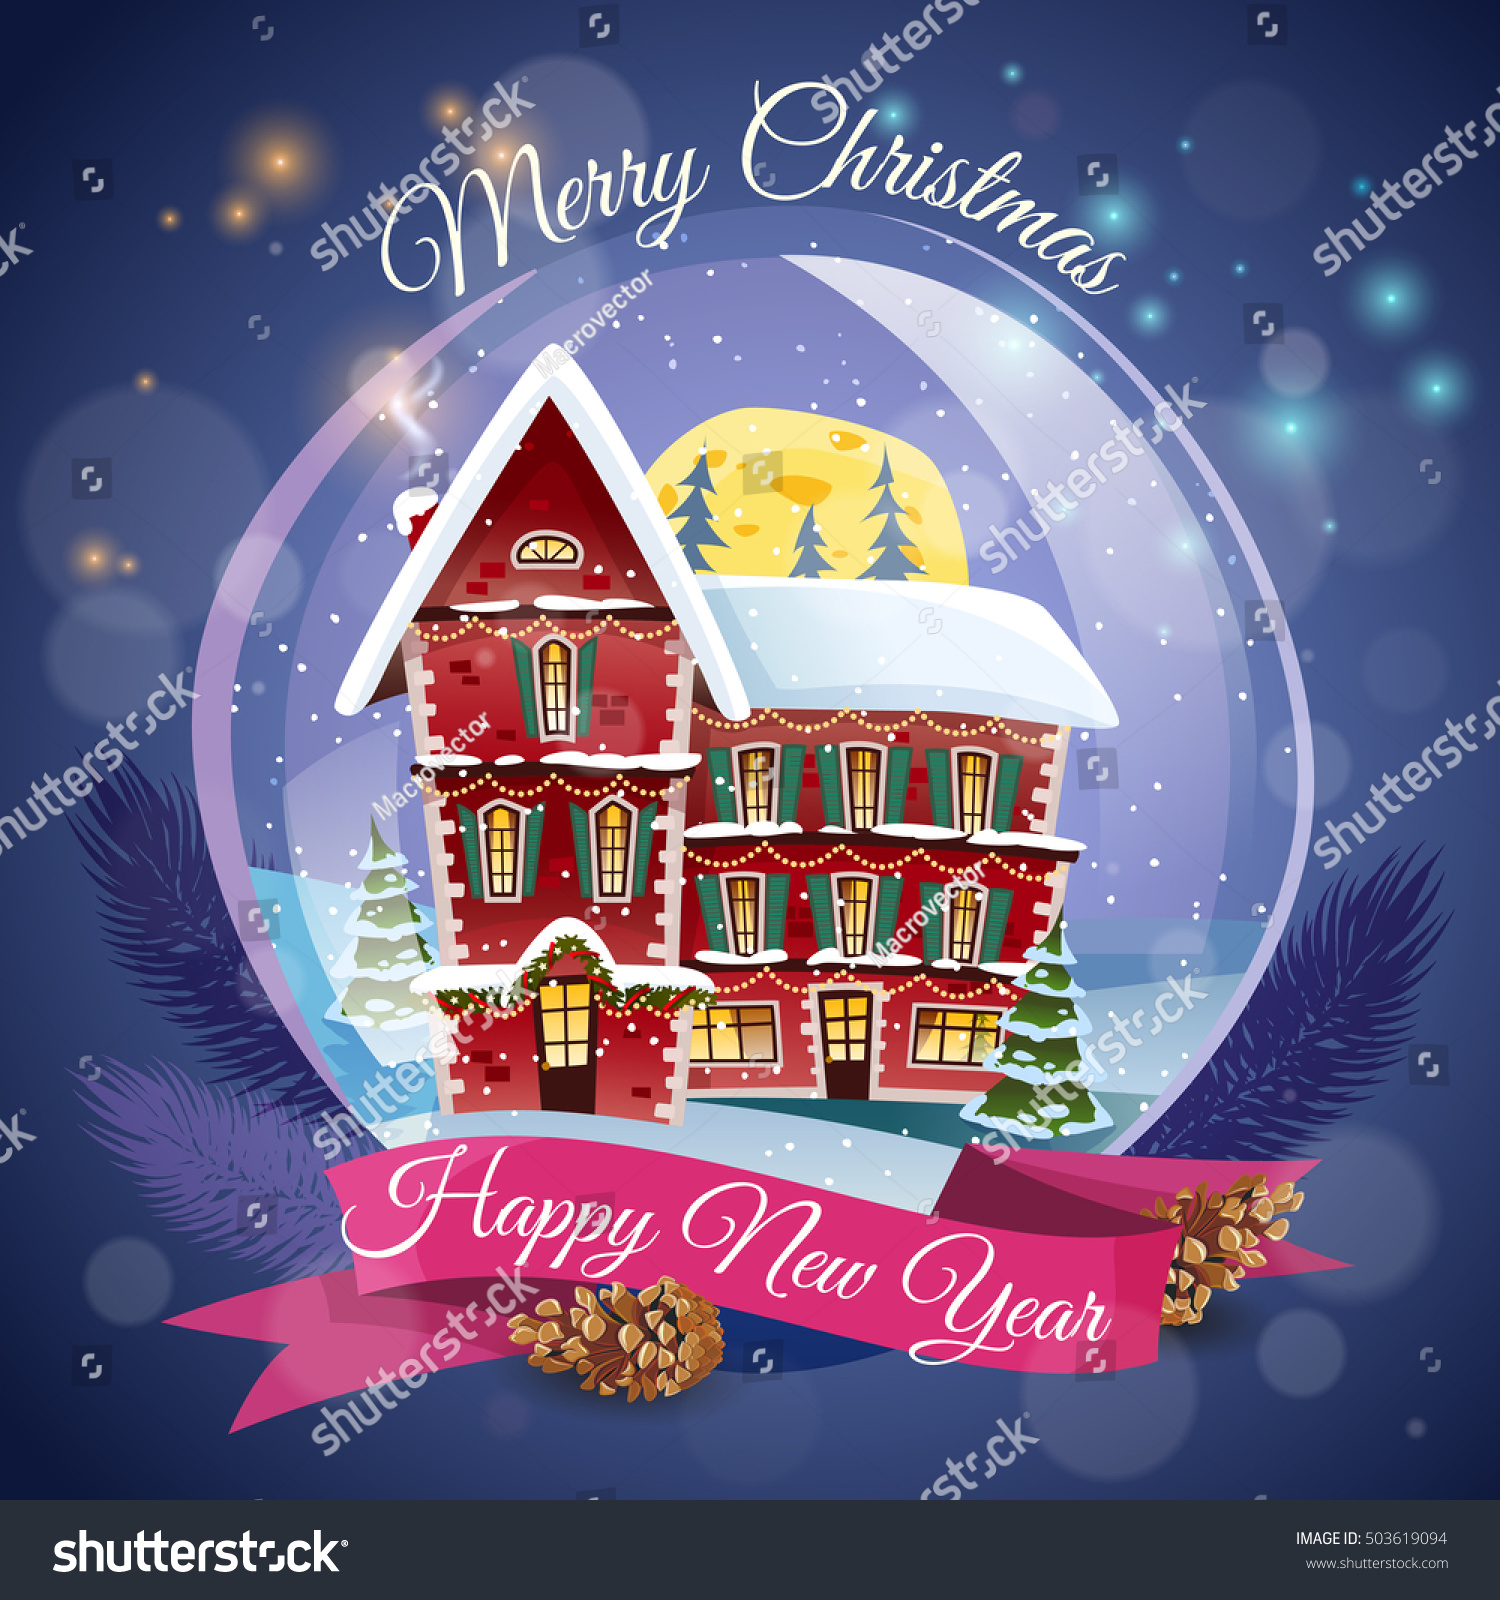 Christmas greeting card magic house night stock vector 503619094 christmas greeting card with magic house at night lights background and happy new year wishing flat kristyandbryce Images